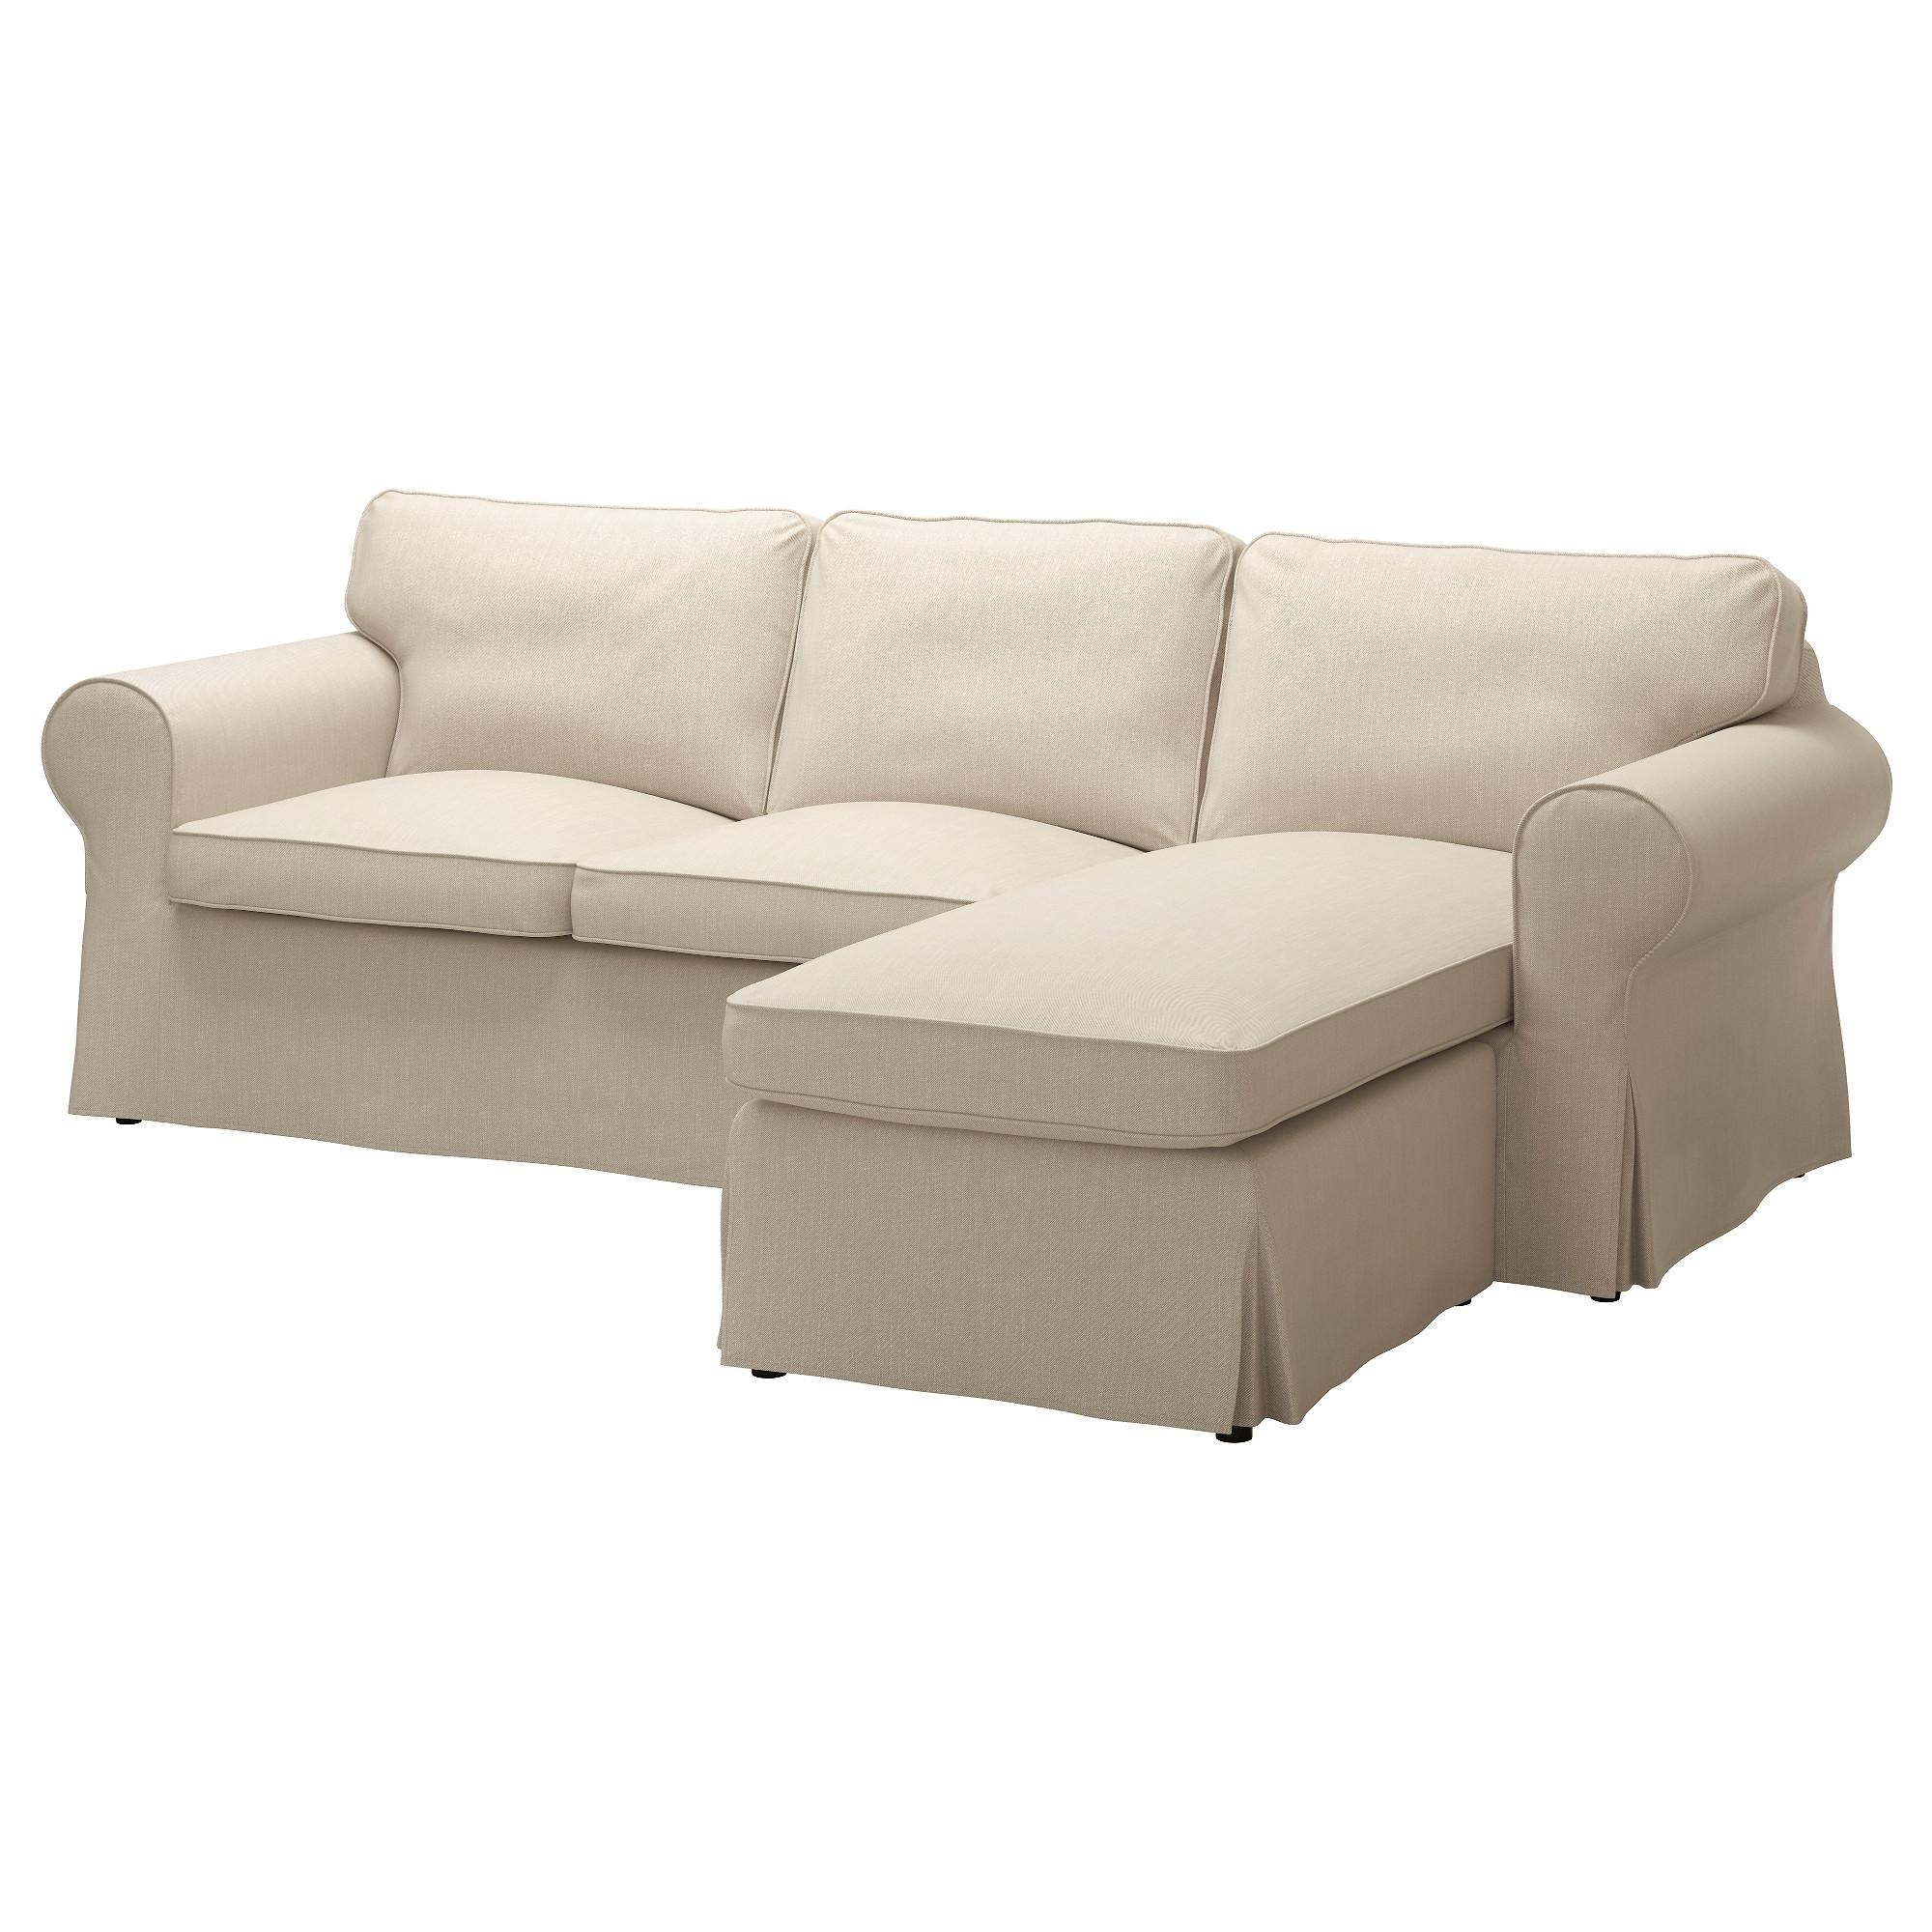 Ektorp Two Seat Sofa And Chaise Longue Nordvalla Dark Beige – Ikea Regarding Ikea Two Seater Sofas (View 15 of 20)